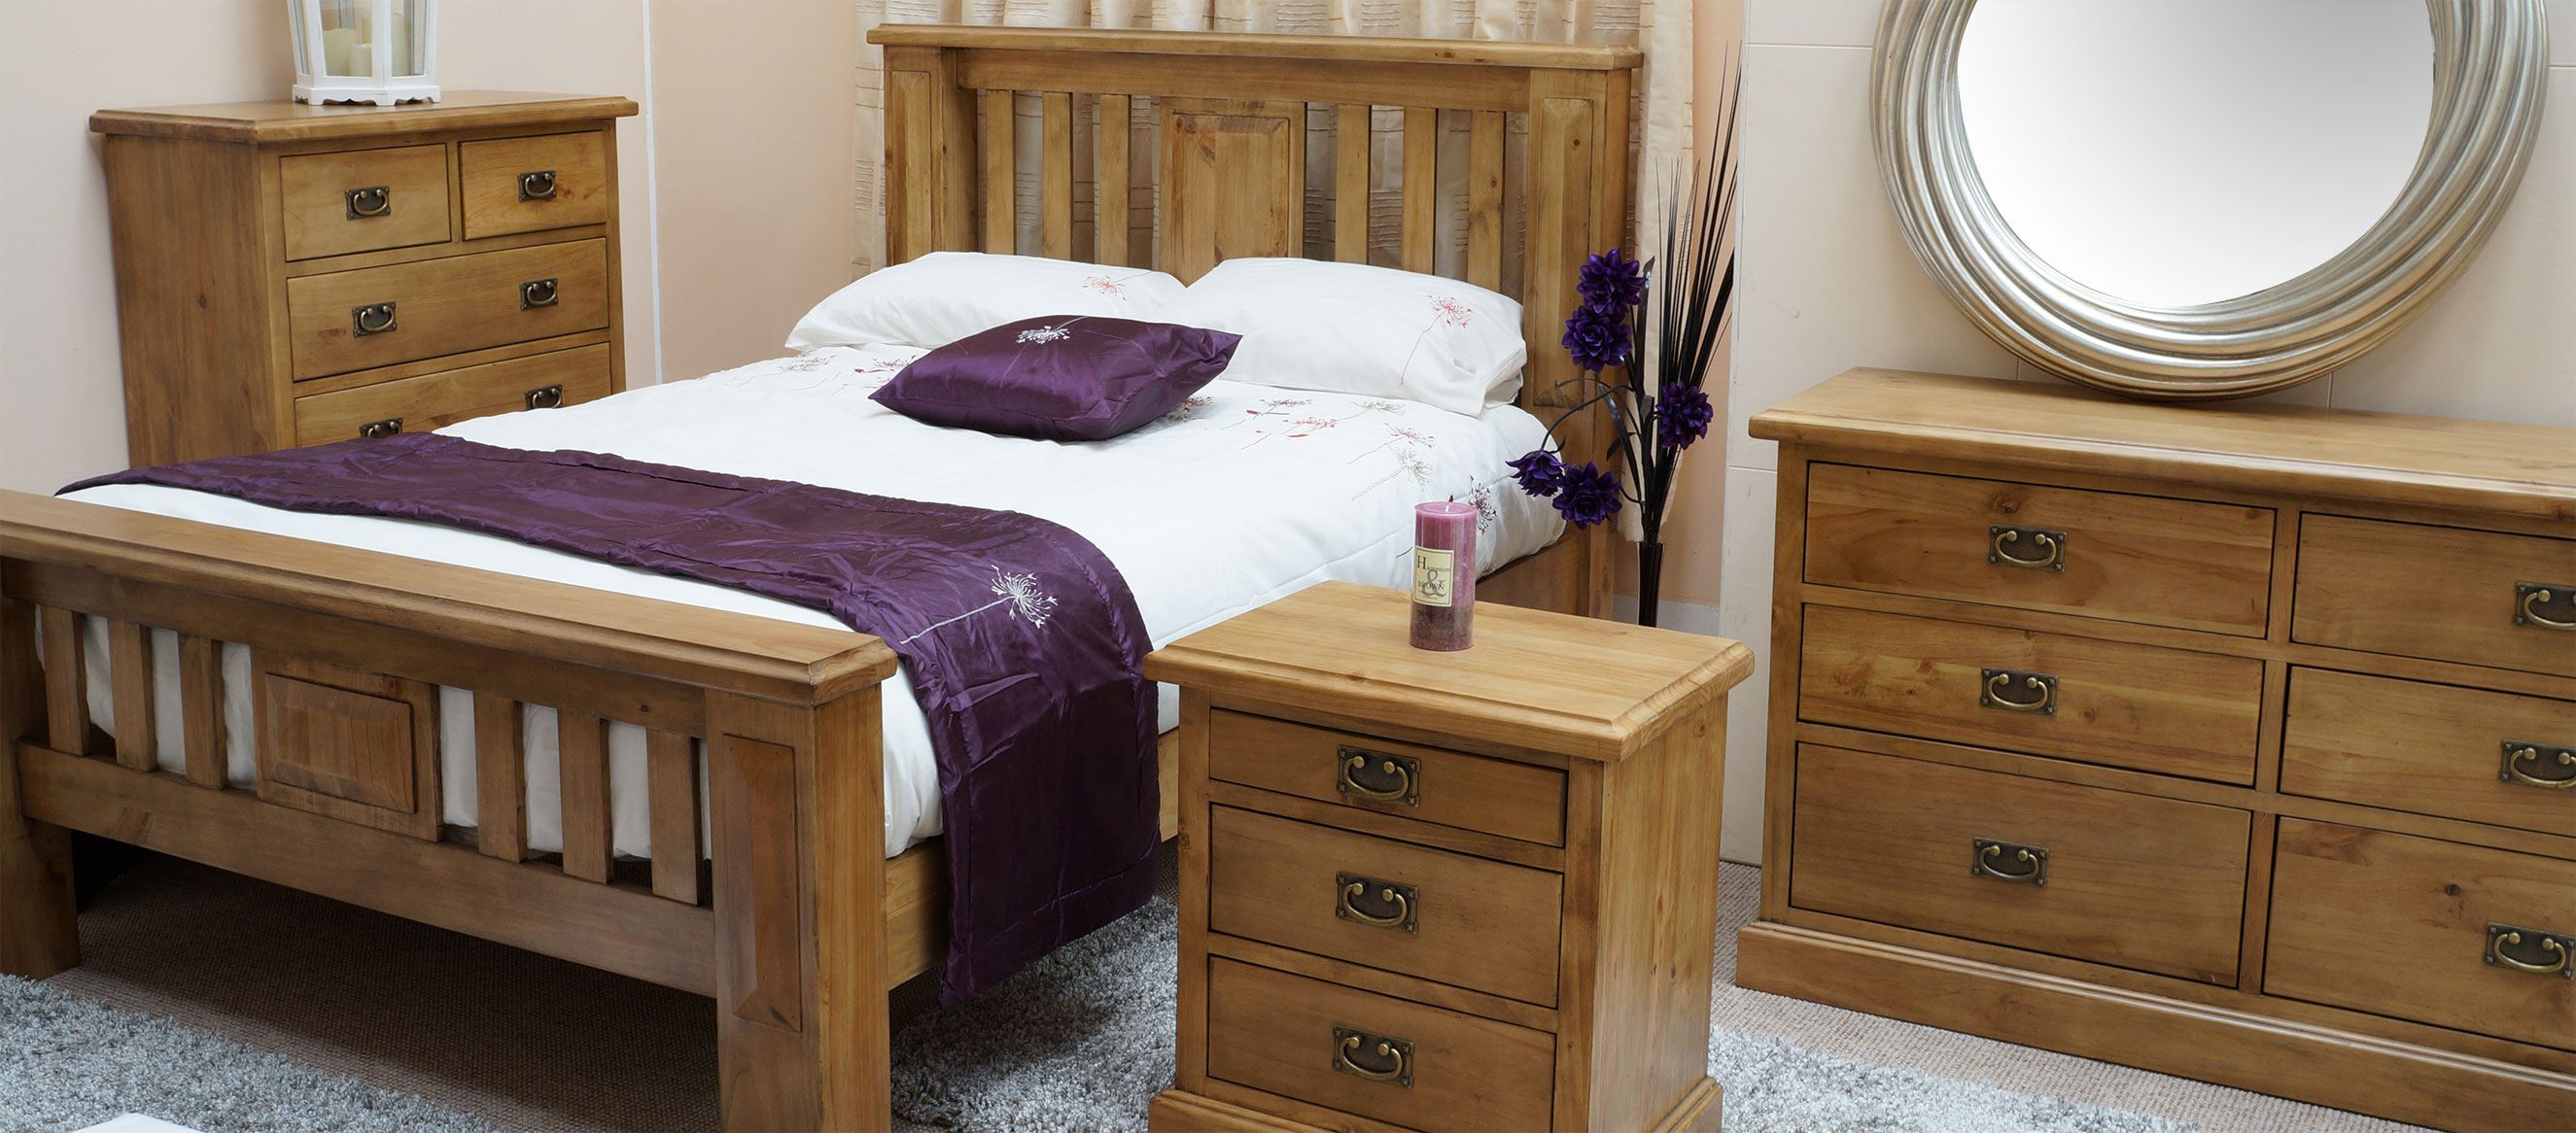 Bedroom furniture fast delivery on bedroom furniture ireland for Bedroom furniture brisbane